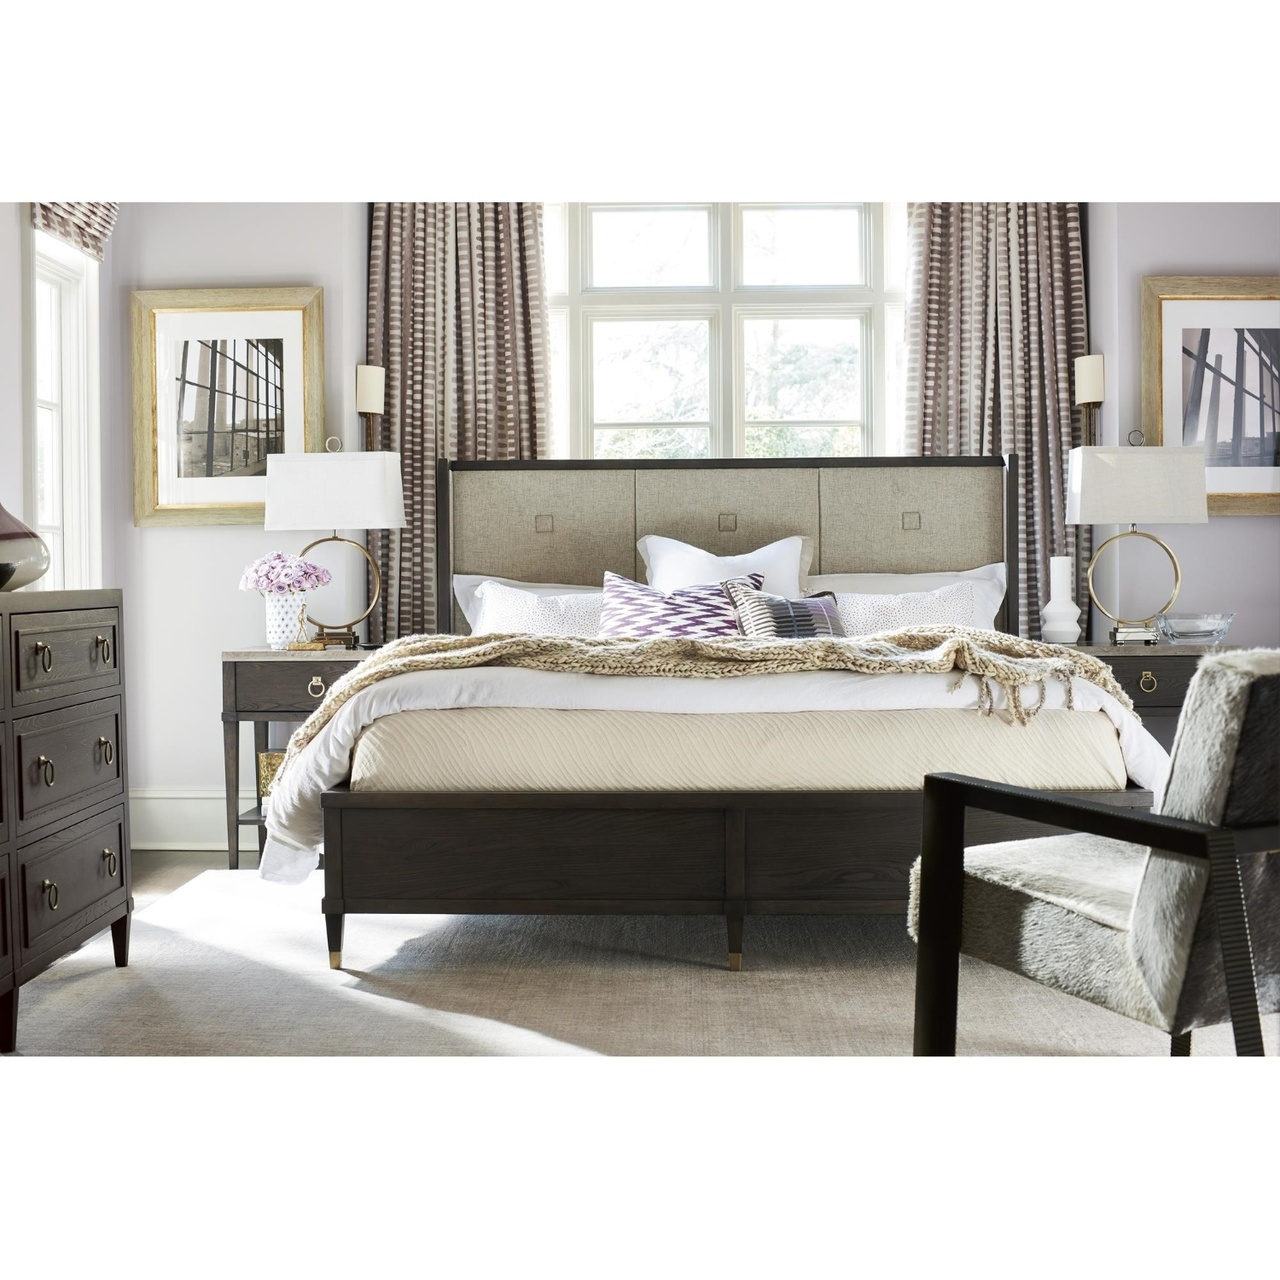 Soliloquy Wood Oatmeal Upholstered Wingback King Bed Zin Home